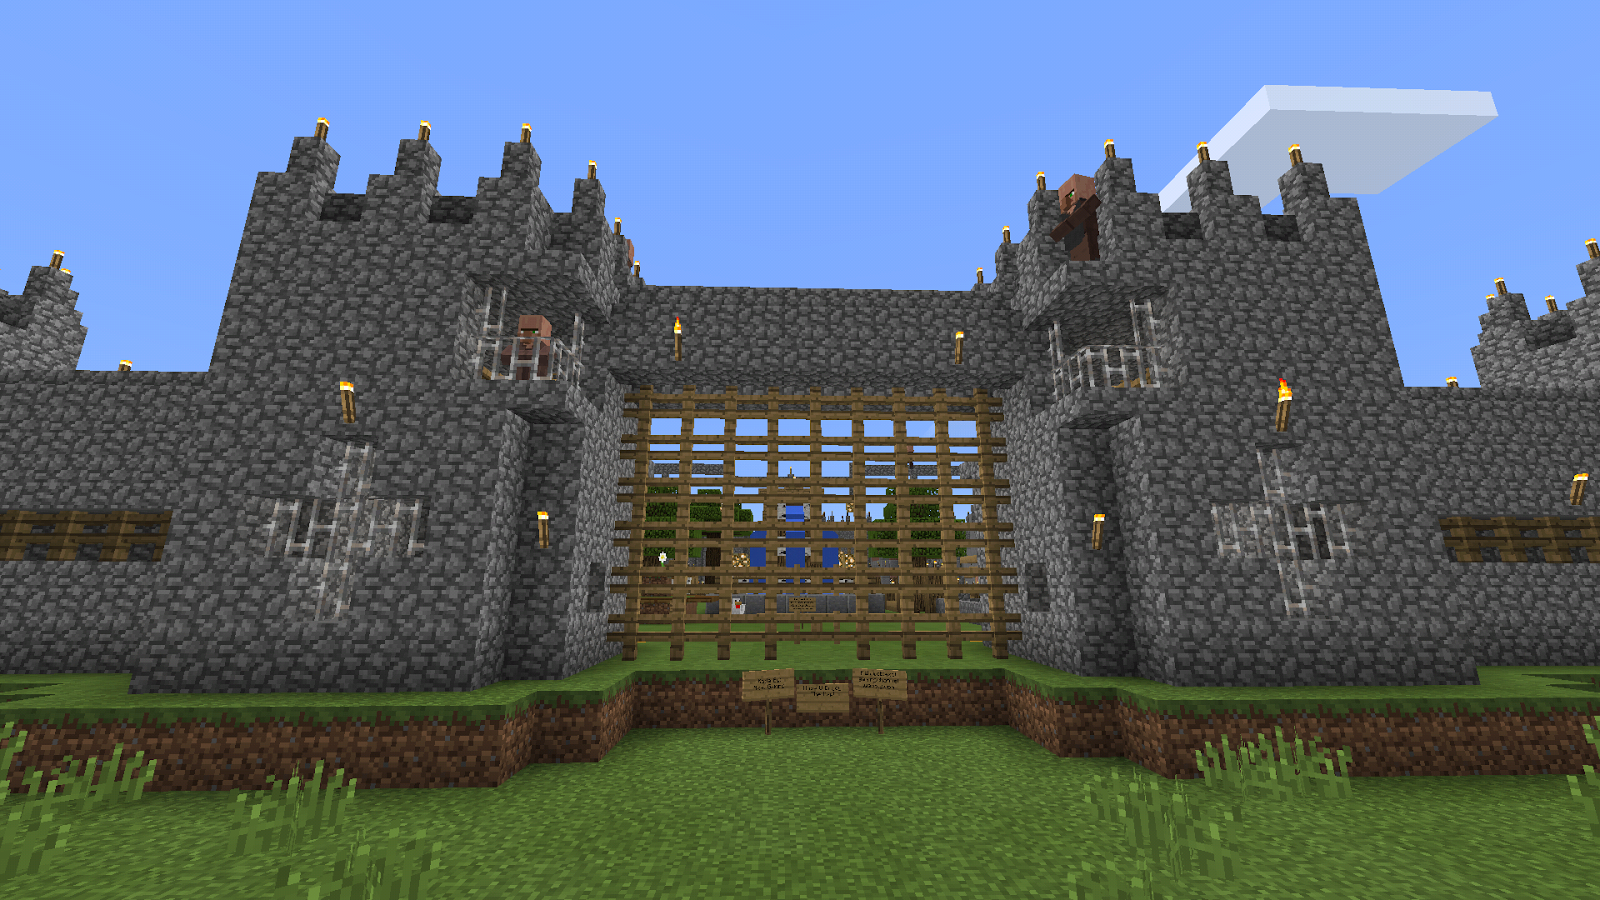 Giant Castle Minecraft map 1 0 0 APK Download - Android